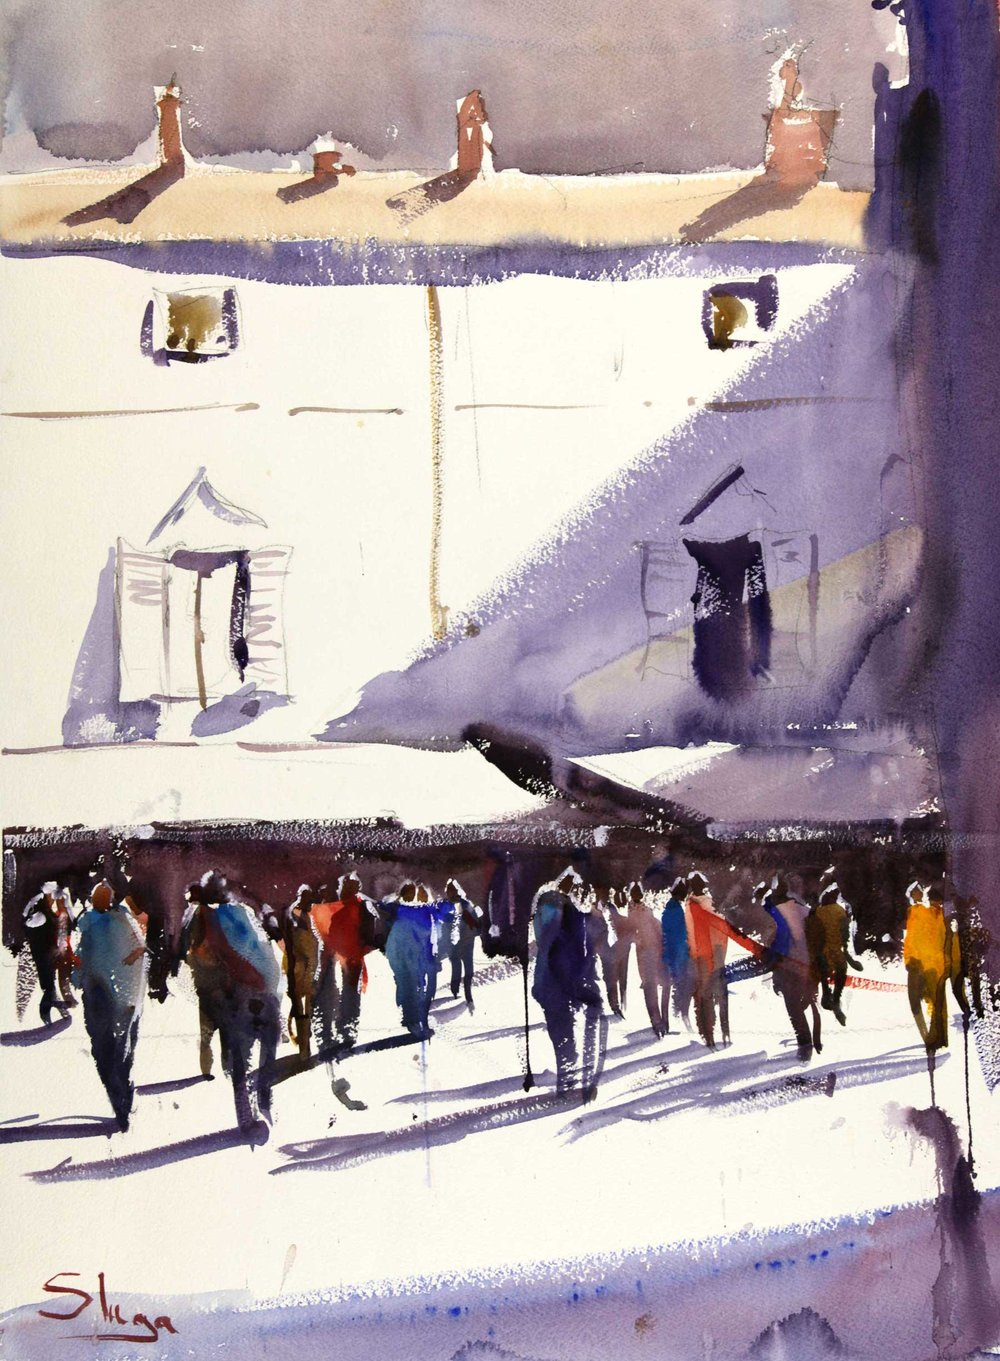 Paris Back Street 55 x 75 cm